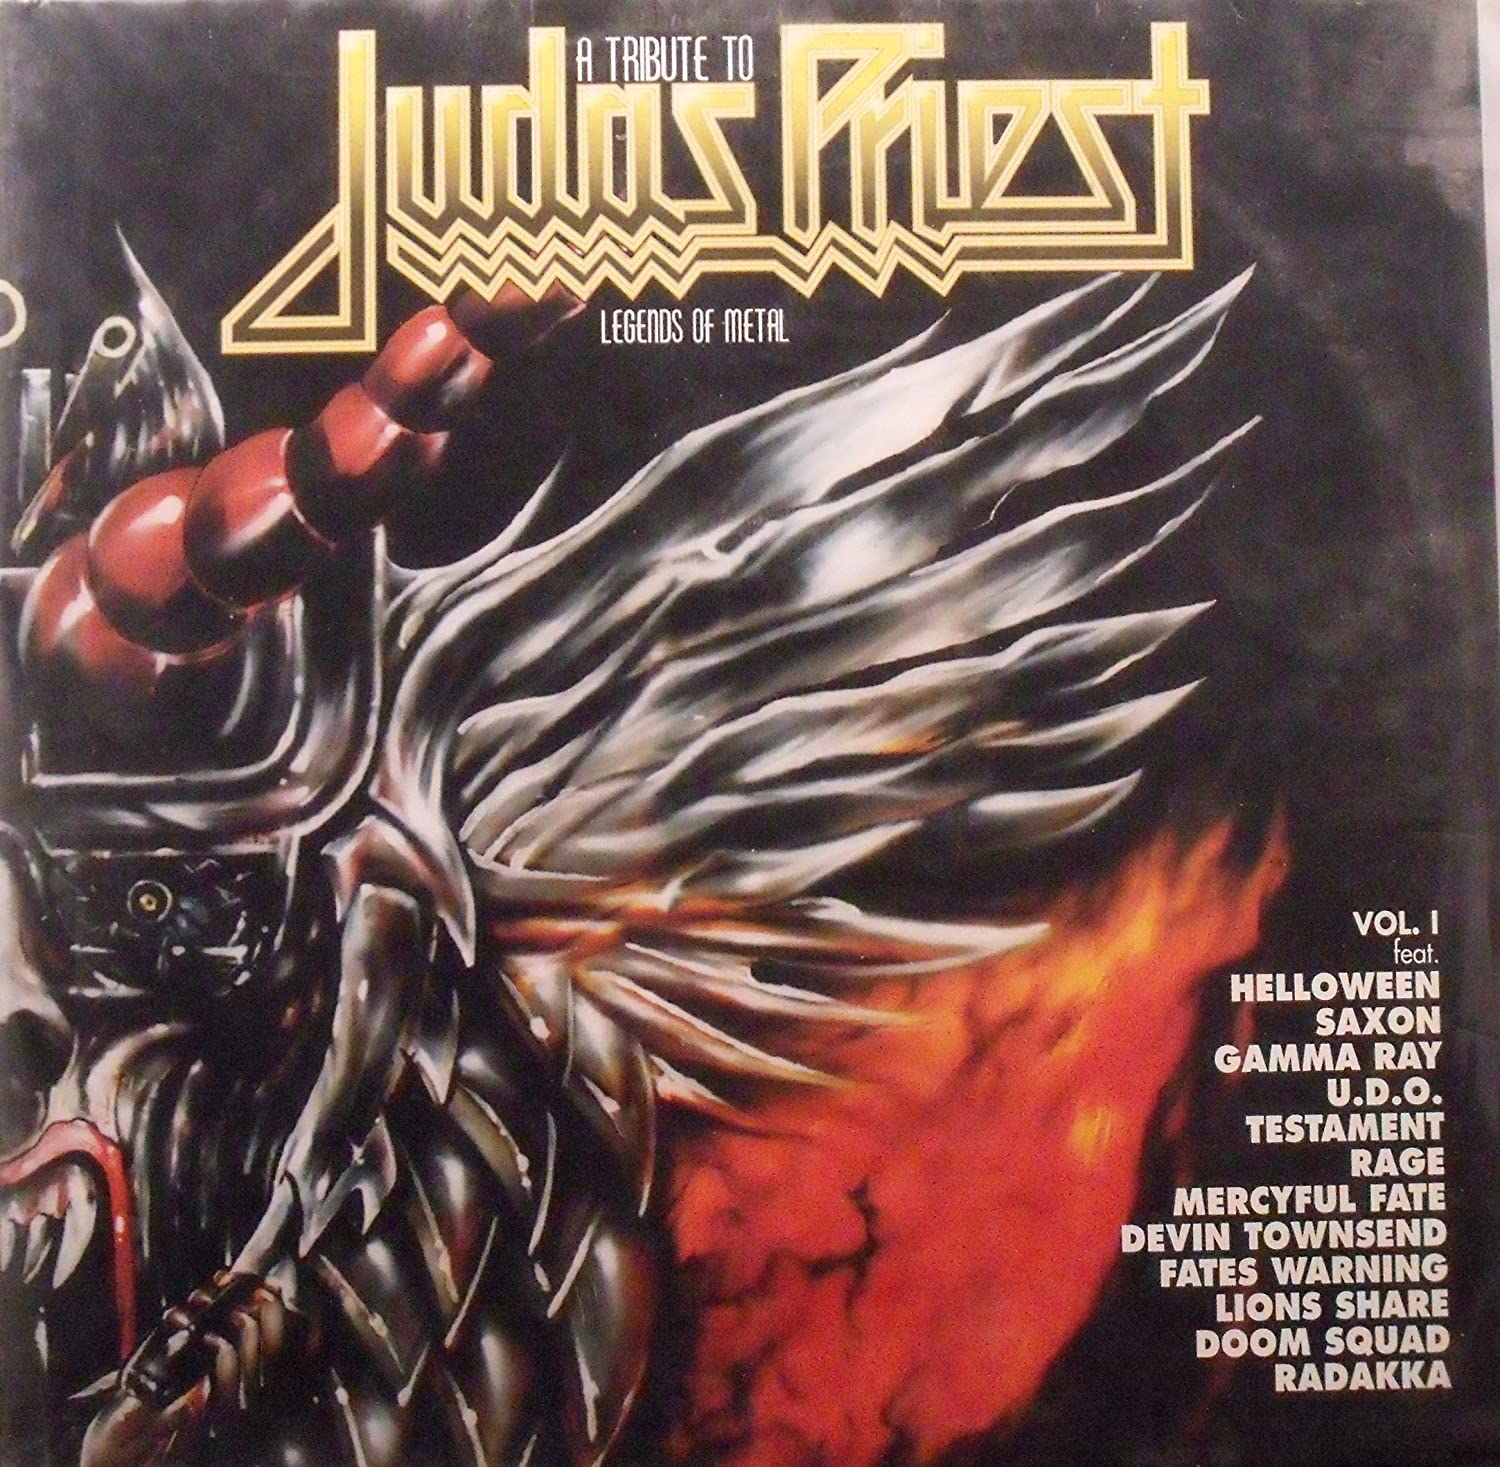 a tribute to judas priest legends of metal